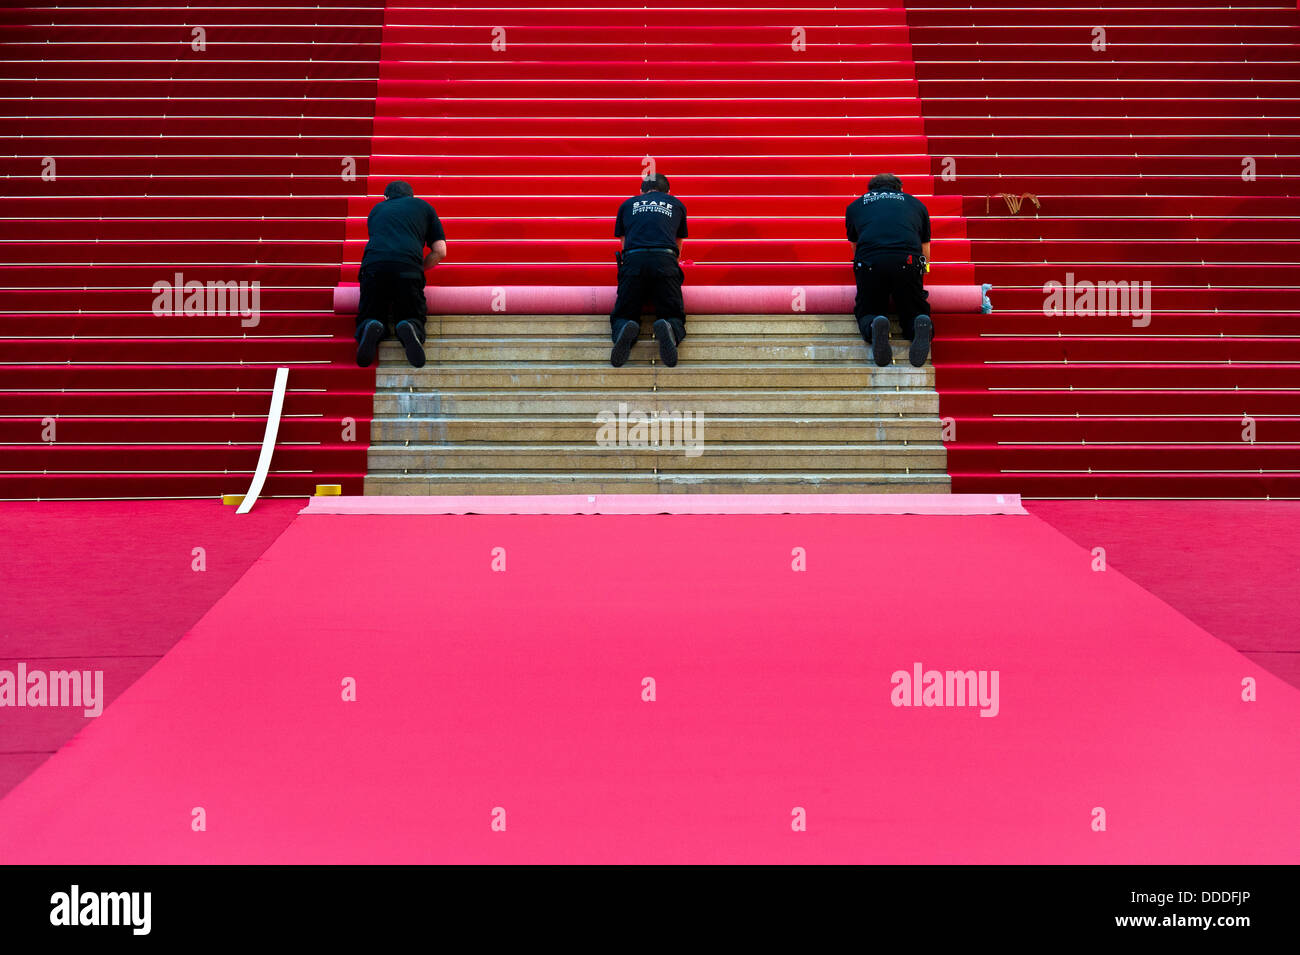 Europe, France, Alpes-Maritimes, Cannes film festival, carpet installation for red carpet. - Stock Image